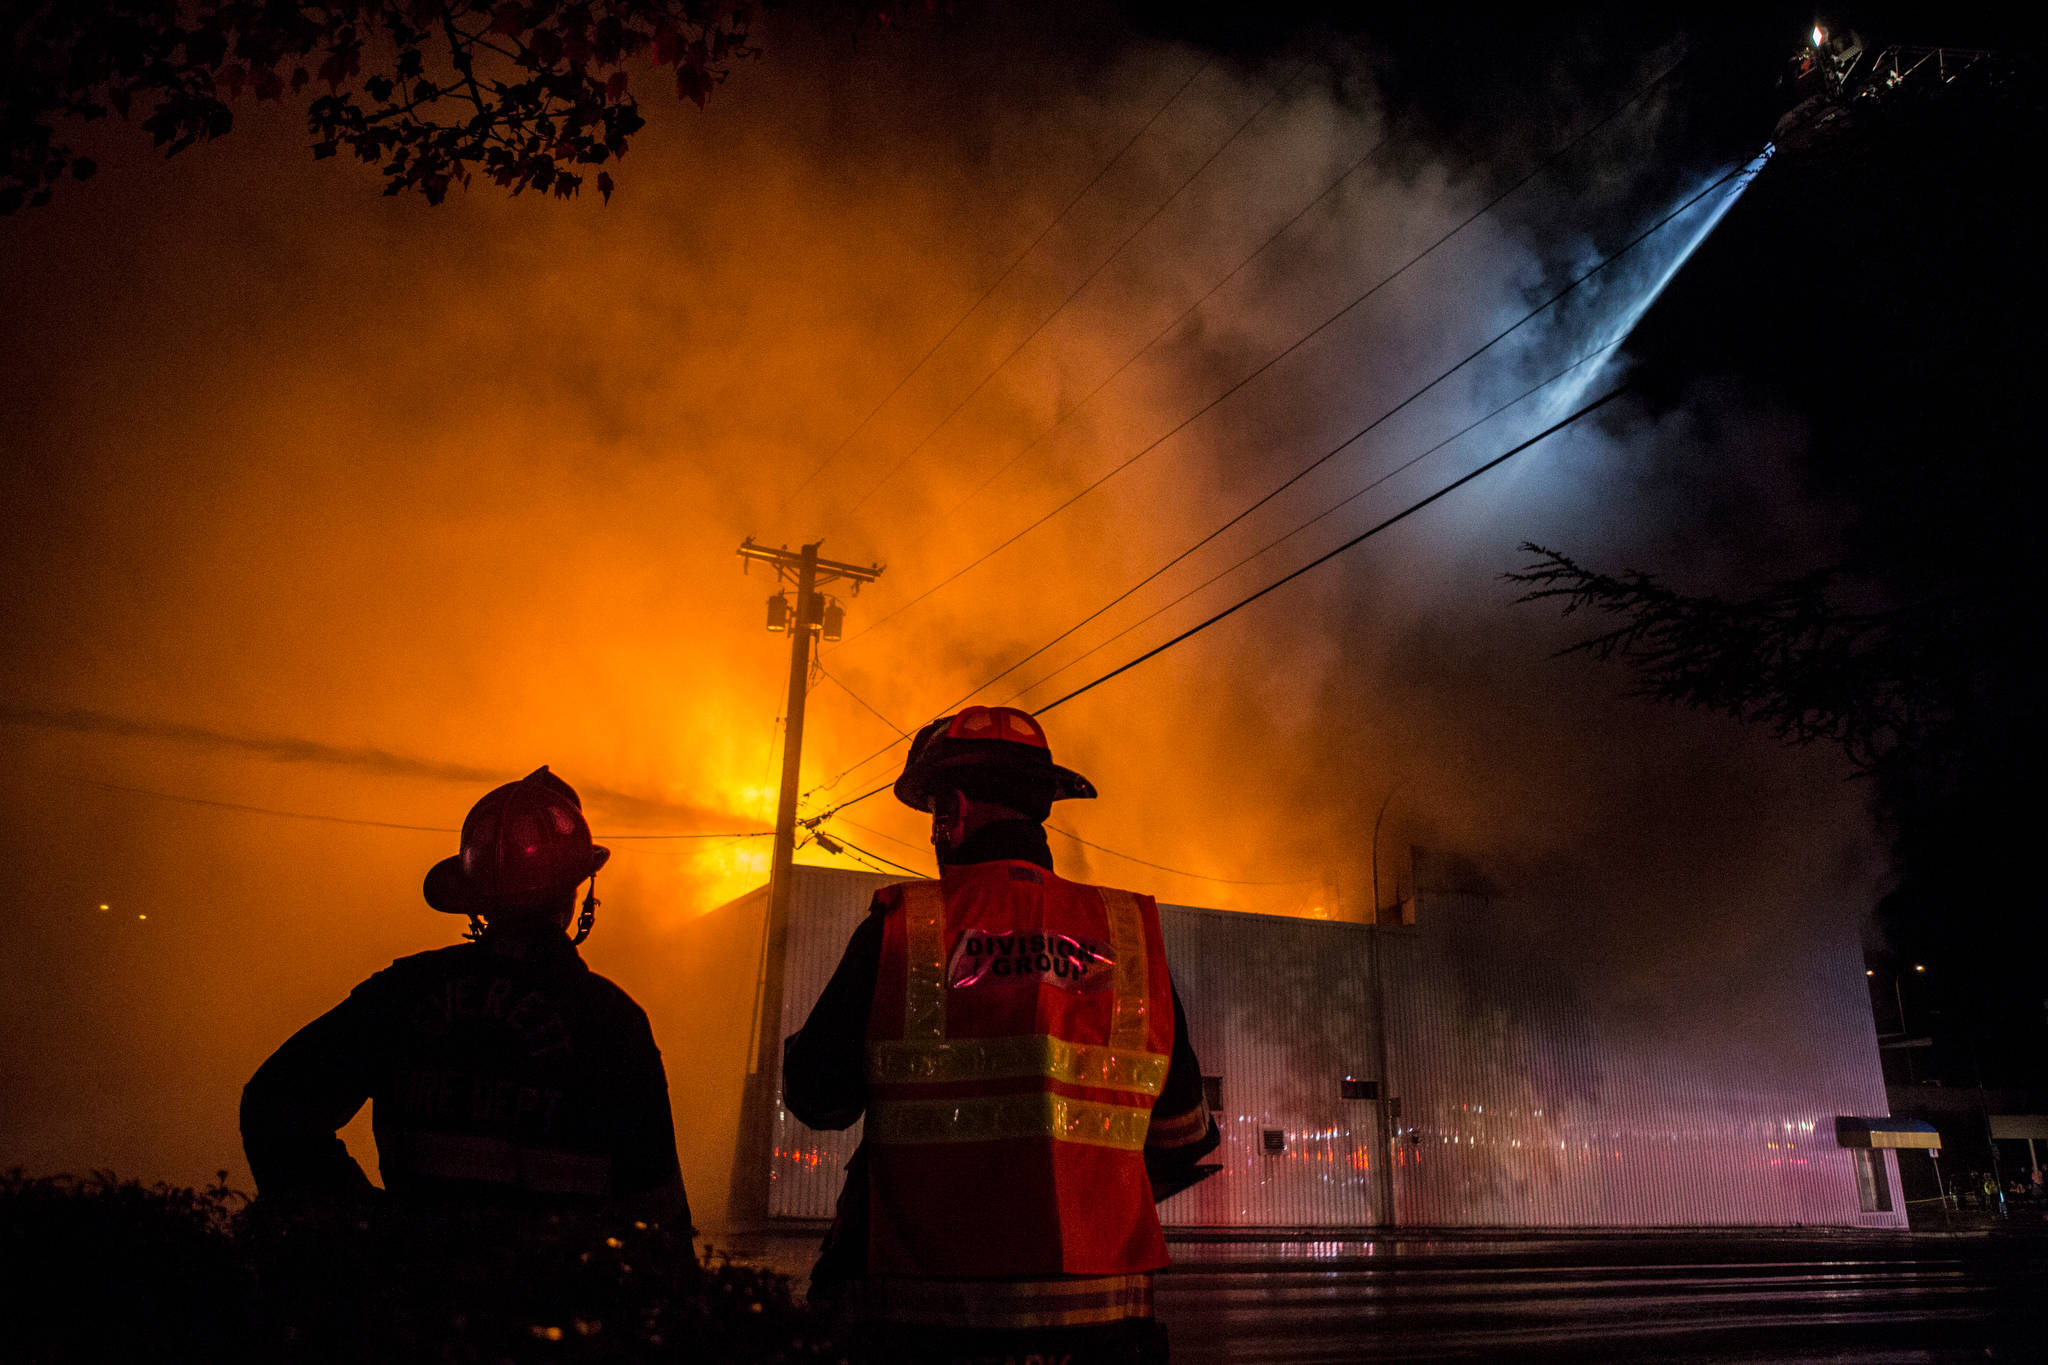 Everett Fire Department firefighters watch as water is sprayed on the Judd & Black appliance store at 3001 Hewitt Ave on Sept. 21, in Everett. (Olivia Vanni / The Herald)